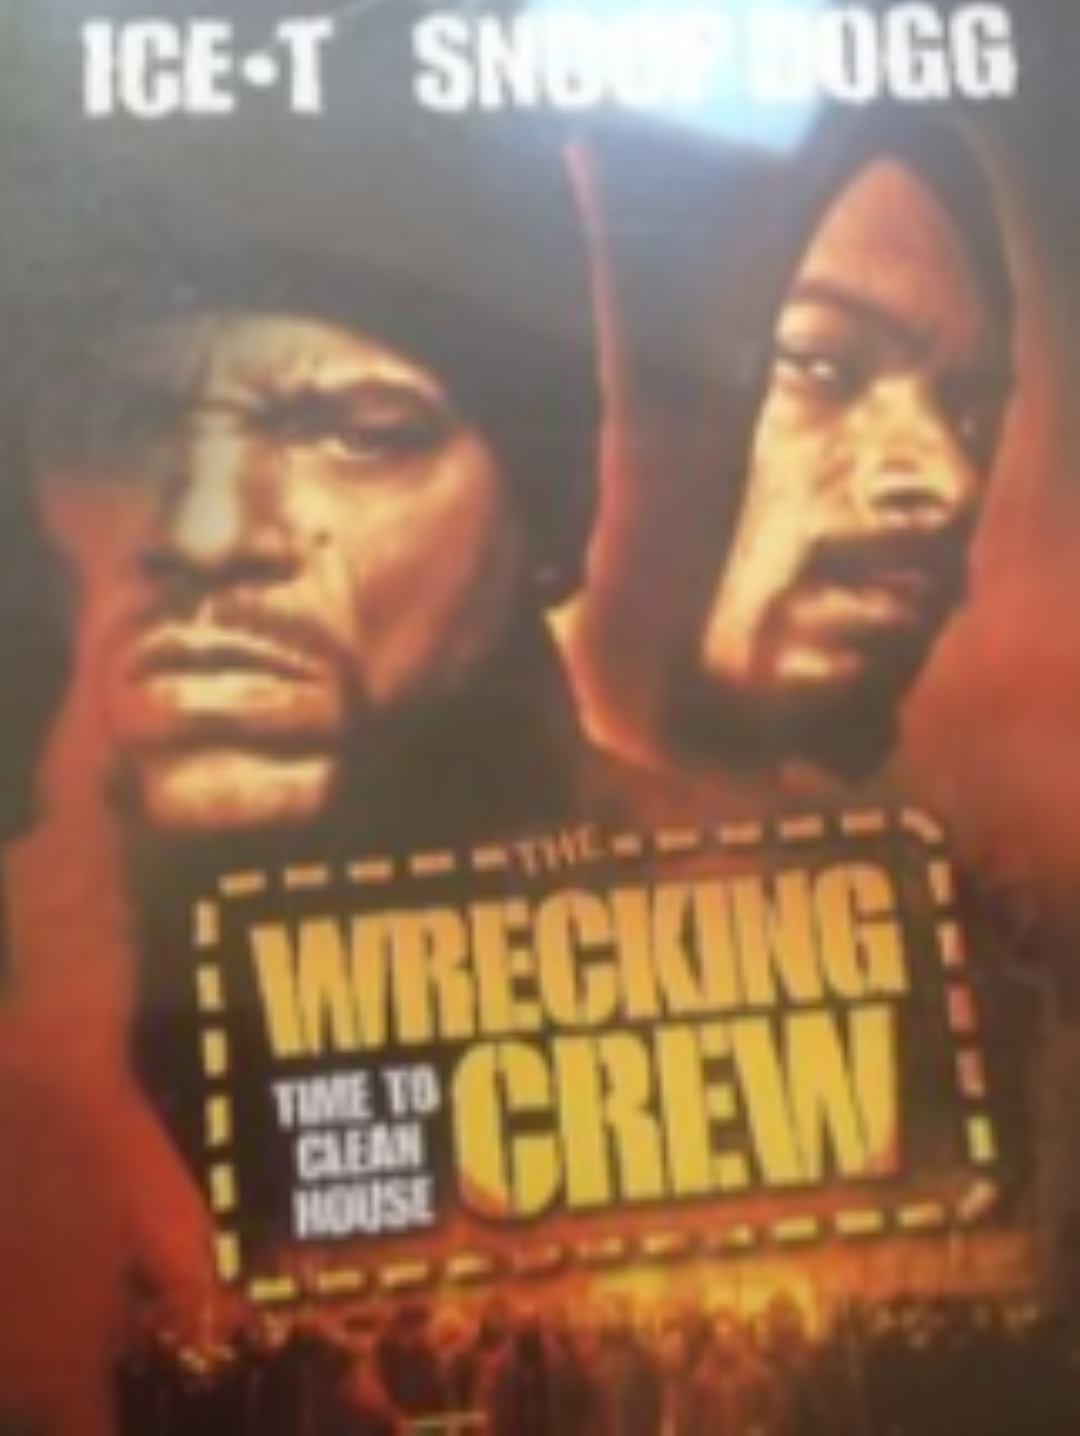 The Wrecking Crew: Time to Clean House Vhs